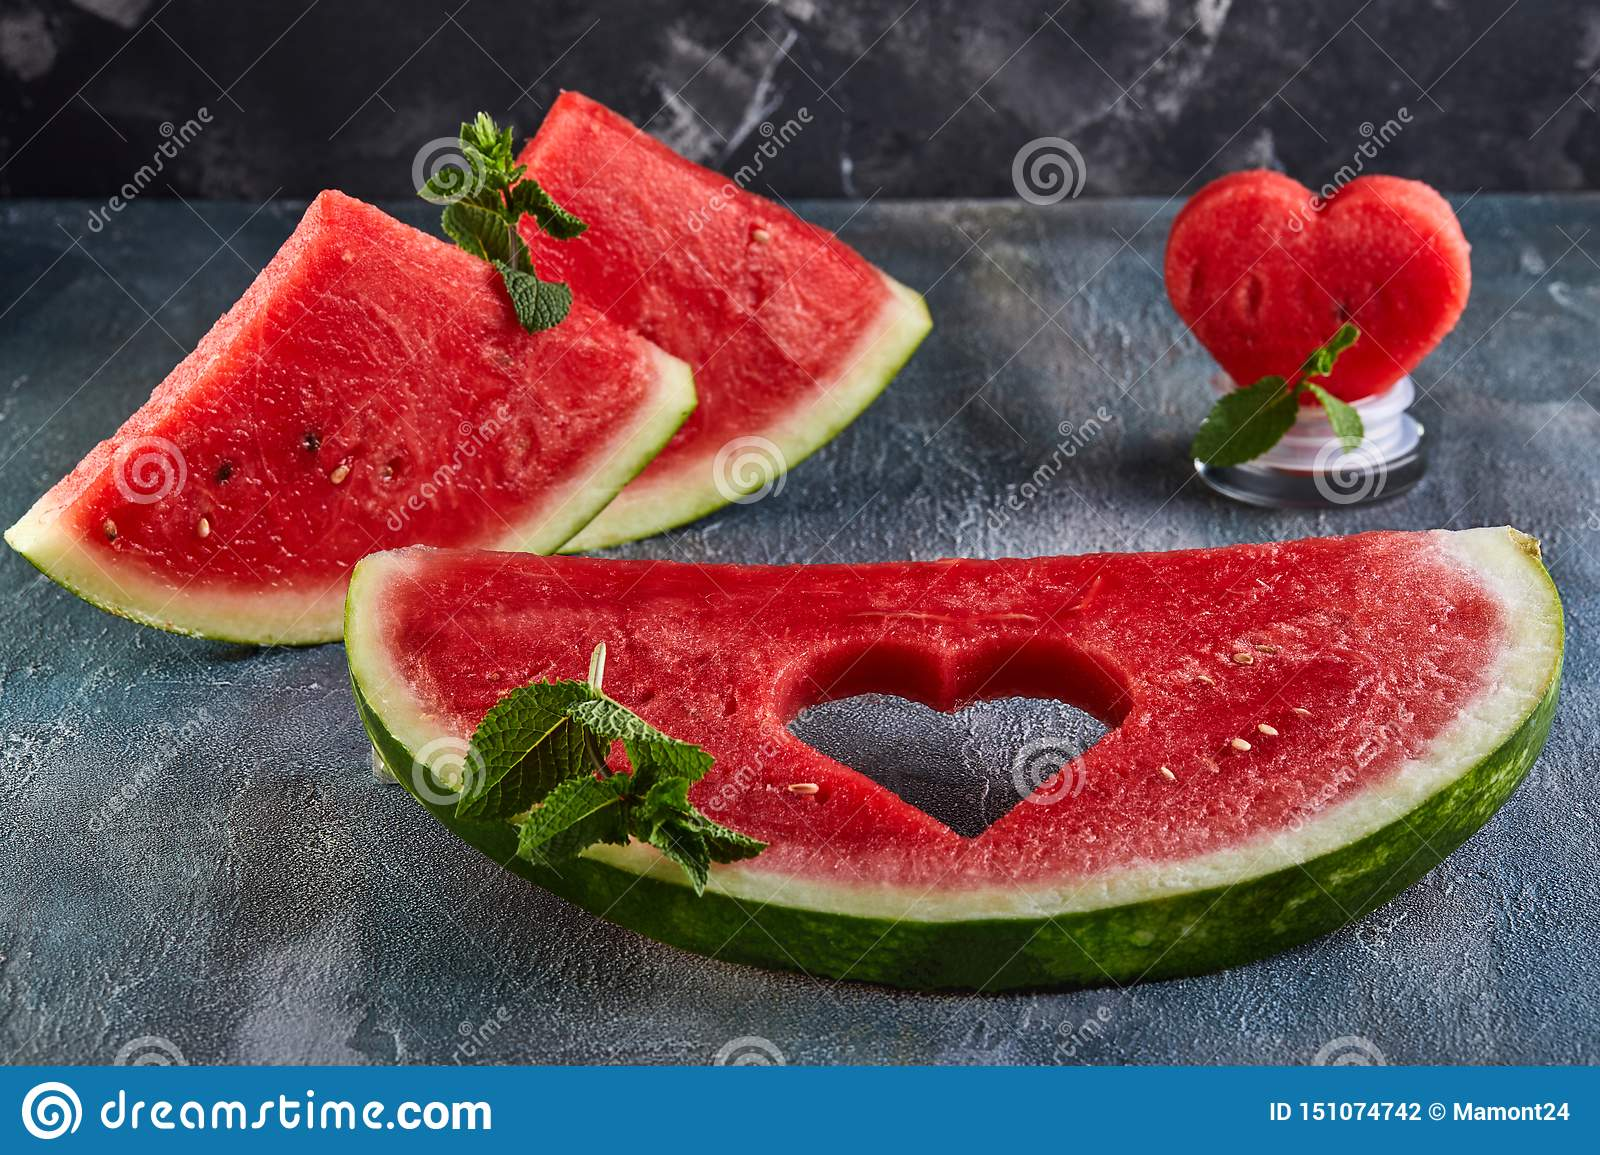 Composition with ripe watermelon, mint leaves and a heart carved in a slice of watermelon. Concept for valentines day